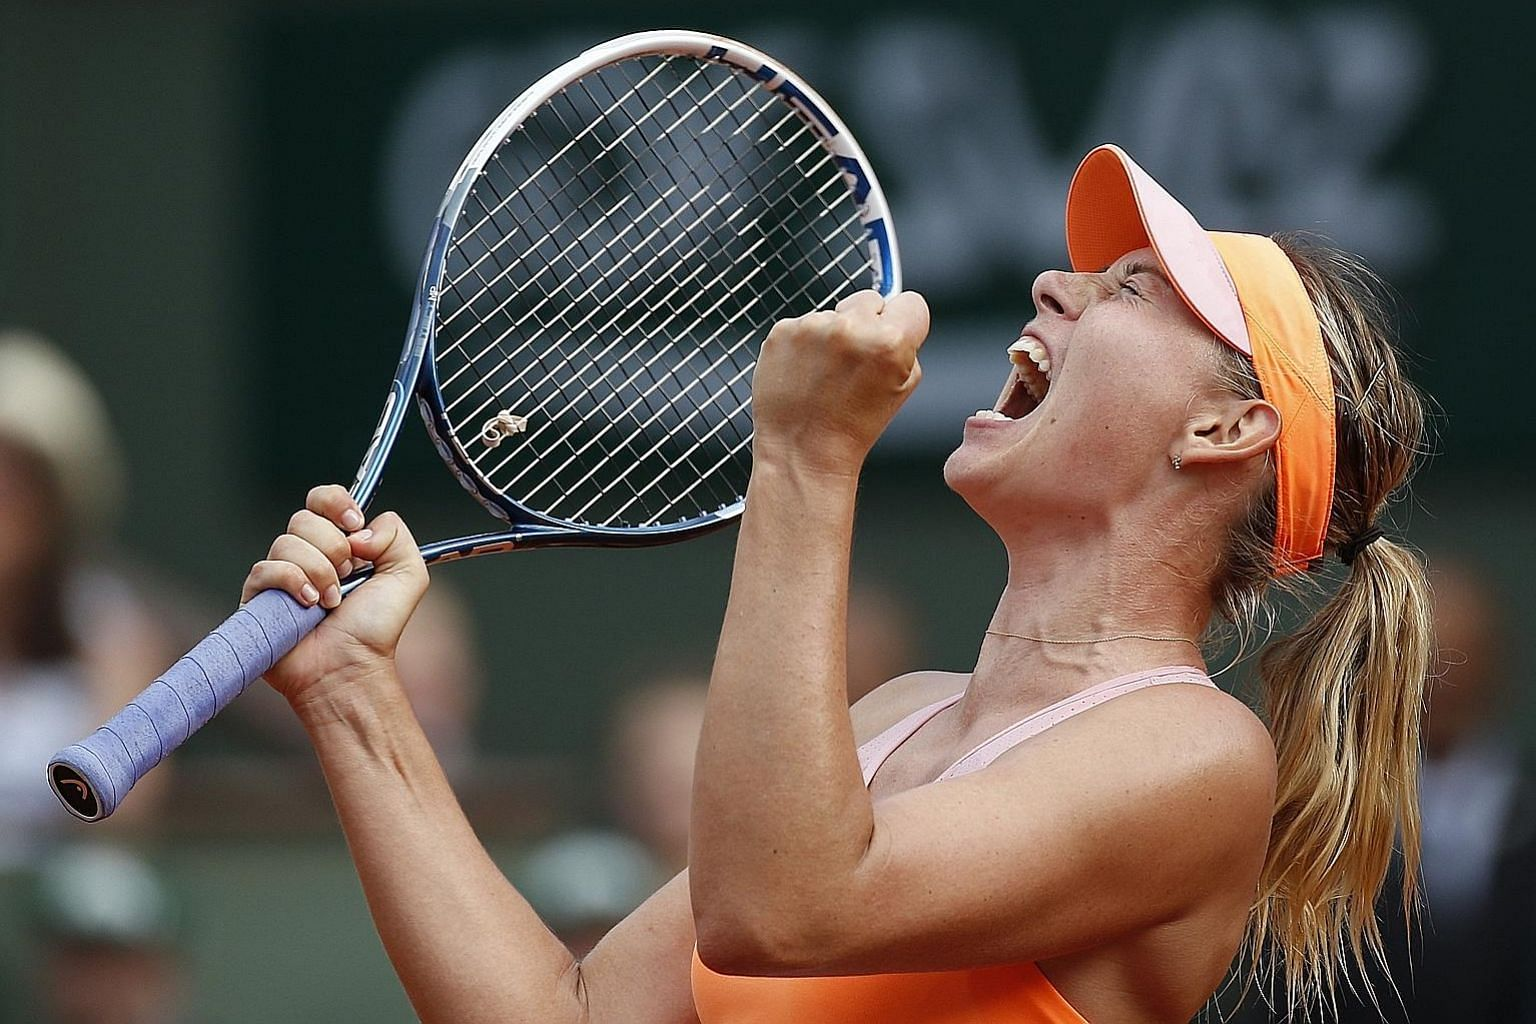 Maria Sharapova celebrating after the 2014 French Open final where she claimed her second Roland Garros title. The now-retired Russian, a five-time Grand Slam champion, is known for her never-say-die attitude. PHOTO: EPA-EFE